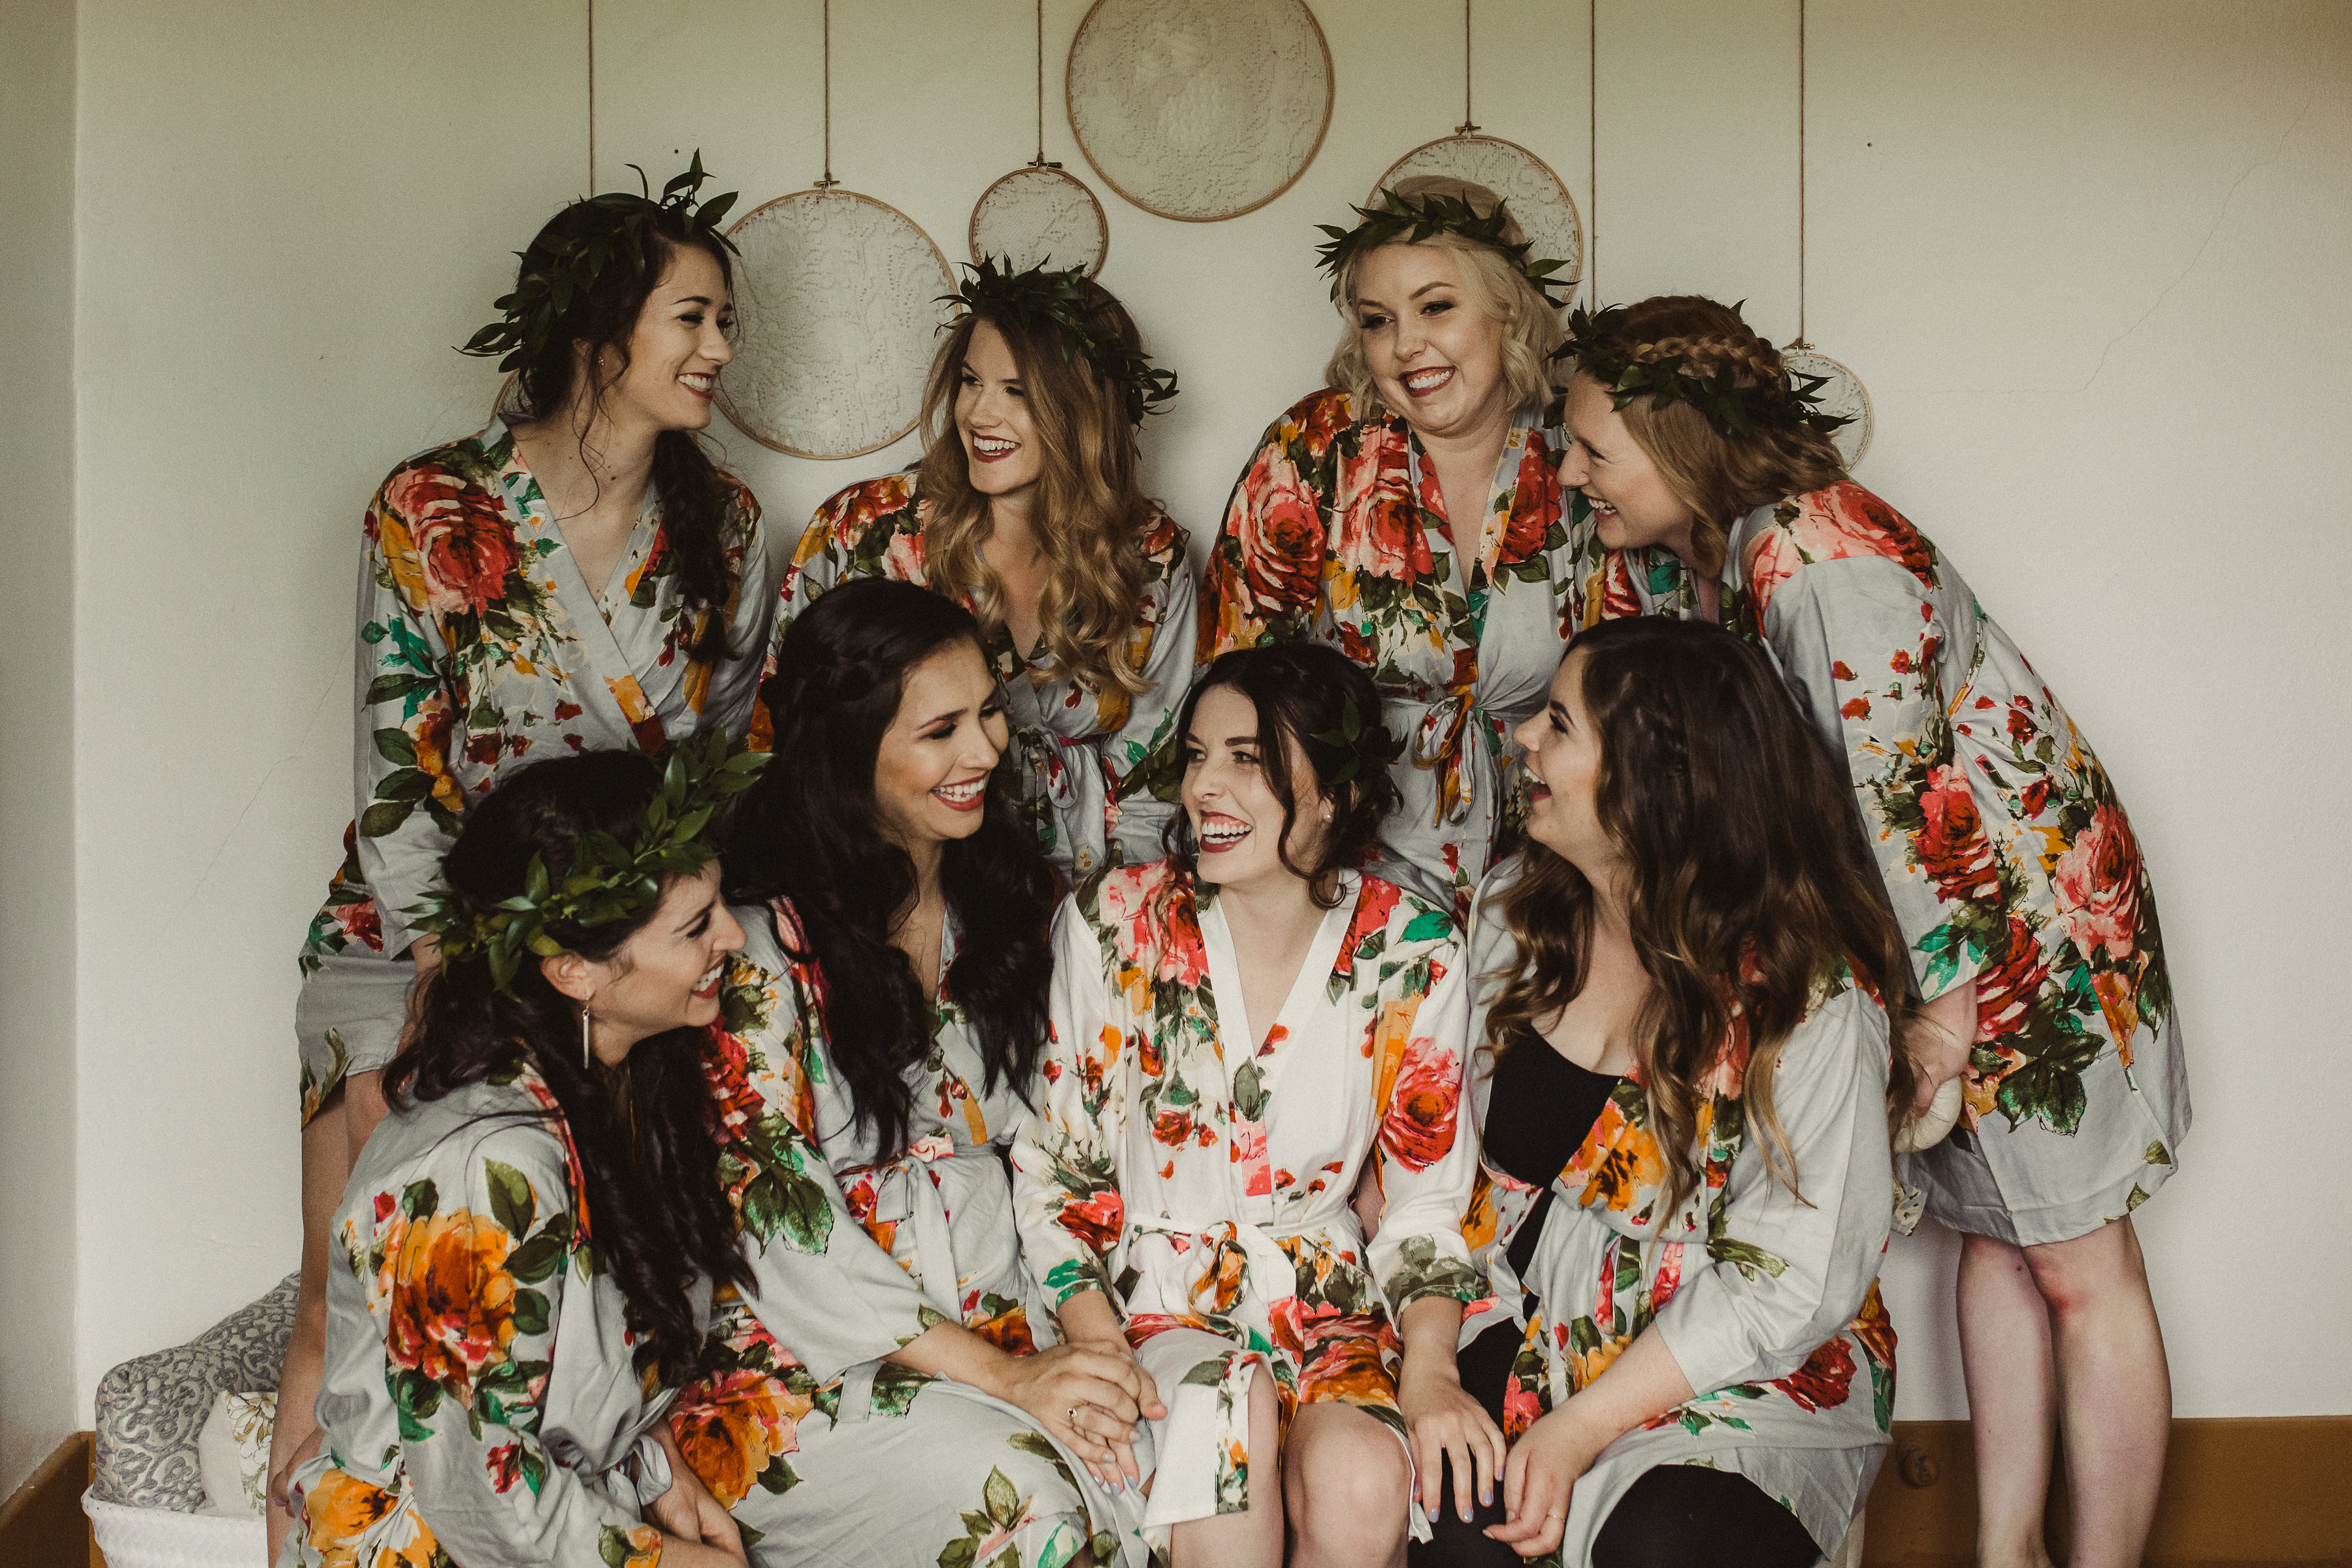 Bride and seven bridesmaids pose in floral robes and flower crowns